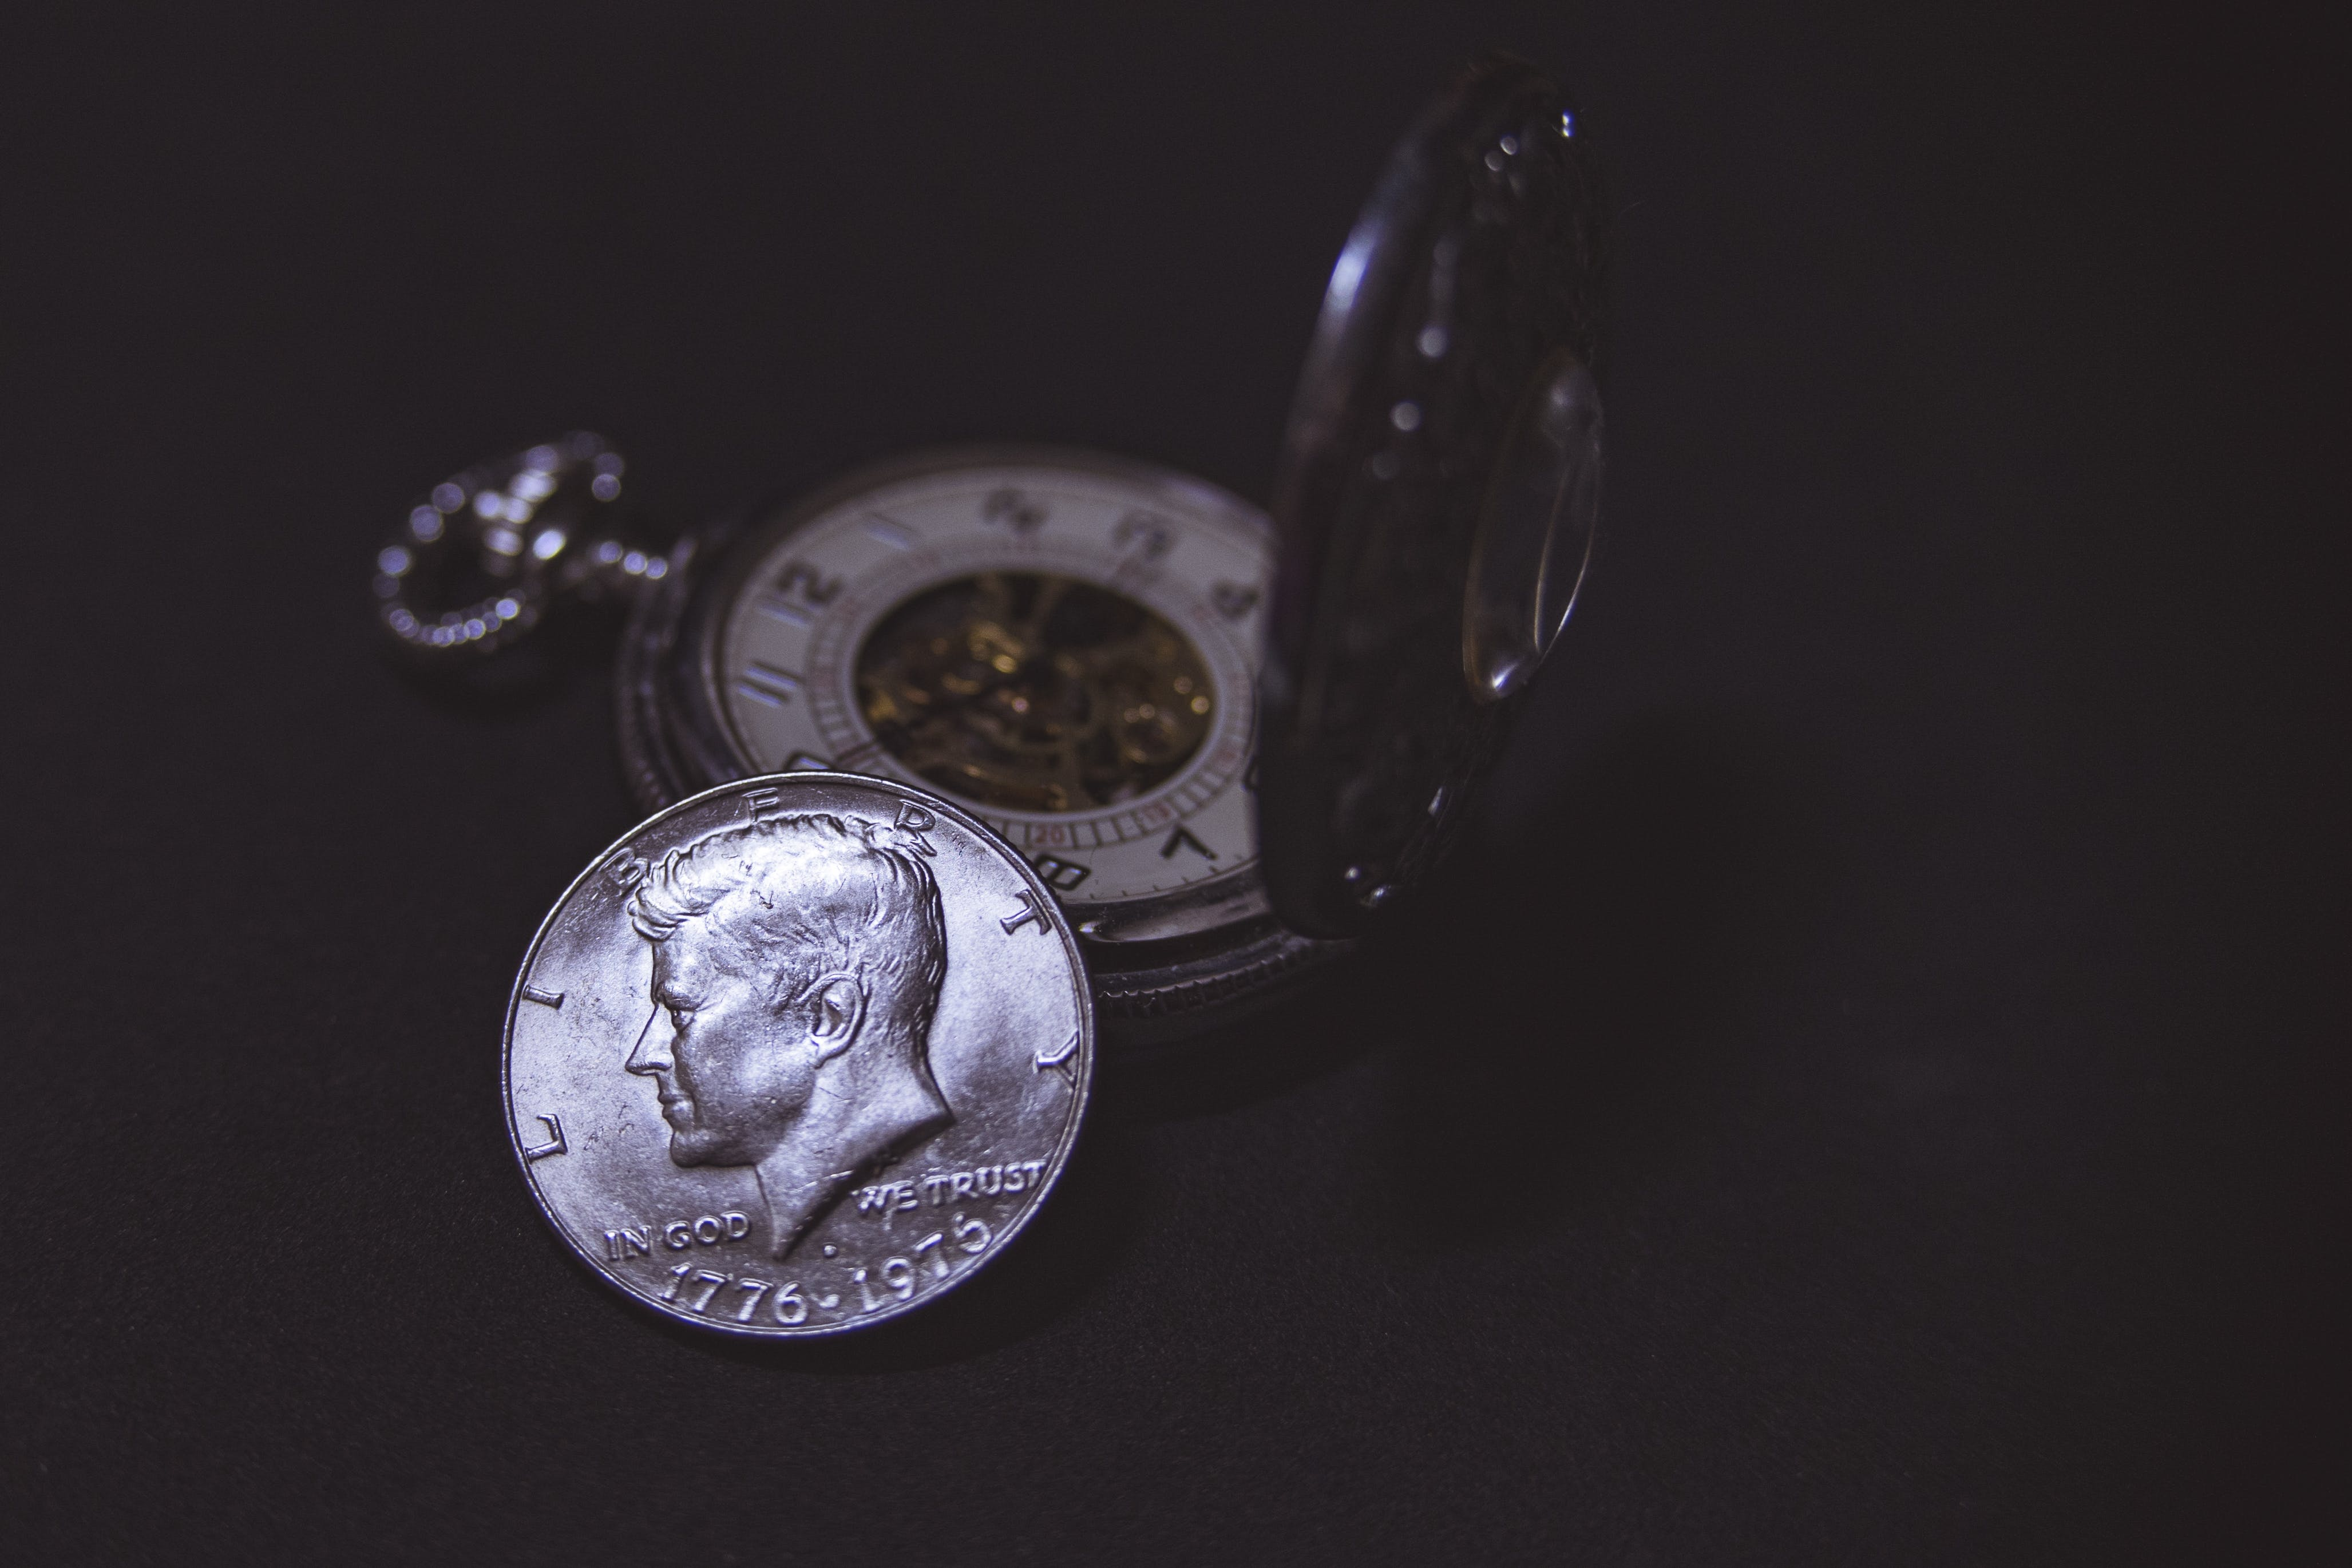 Round Silver-colored Liberty Coin